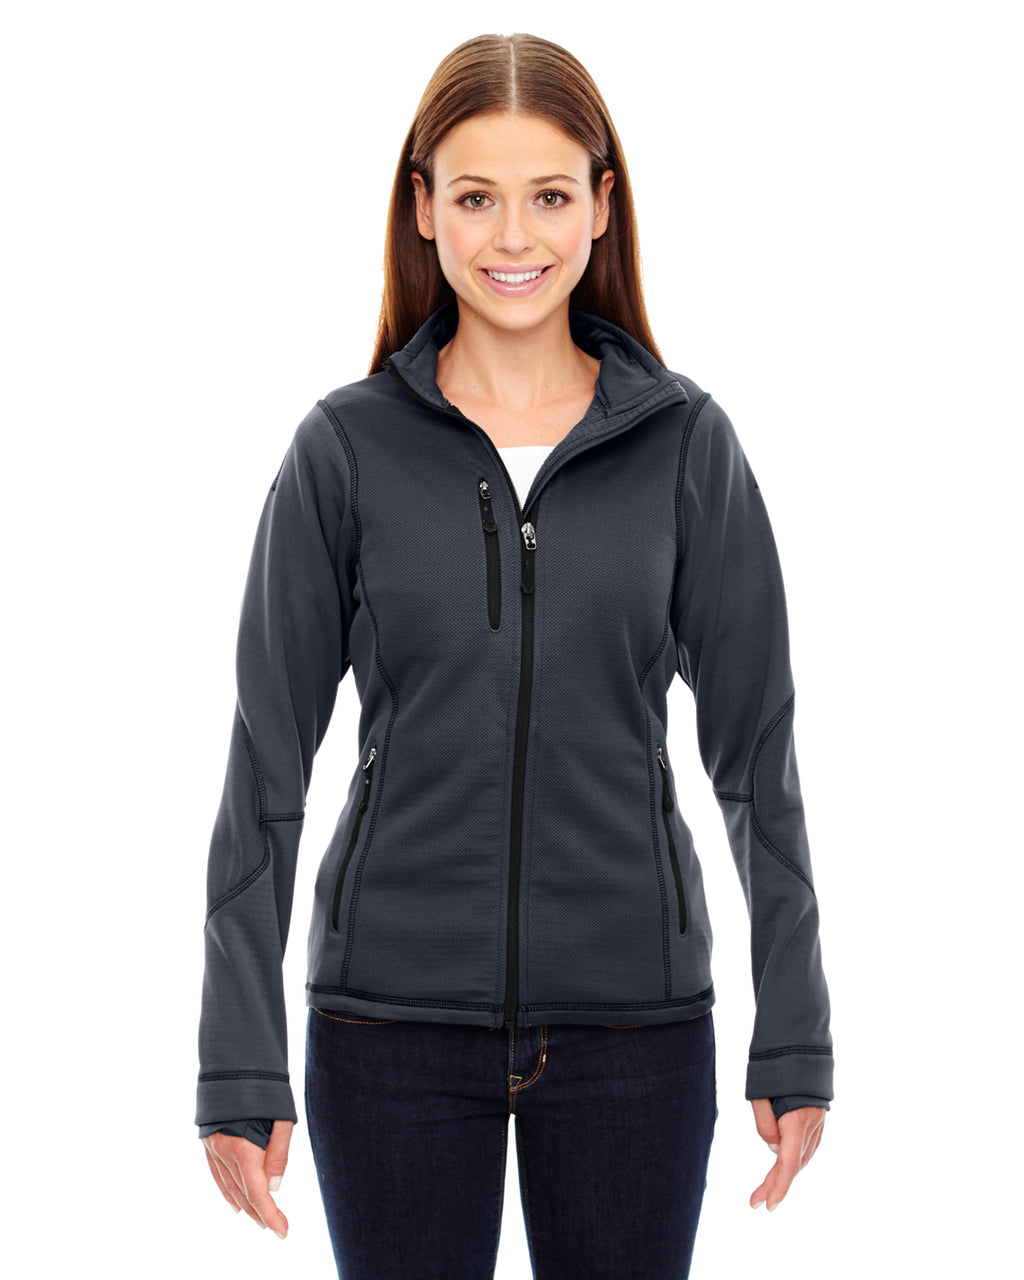 78681 Ash City - North End Ladies' Pulse Textured Bonded Fleece Jacket